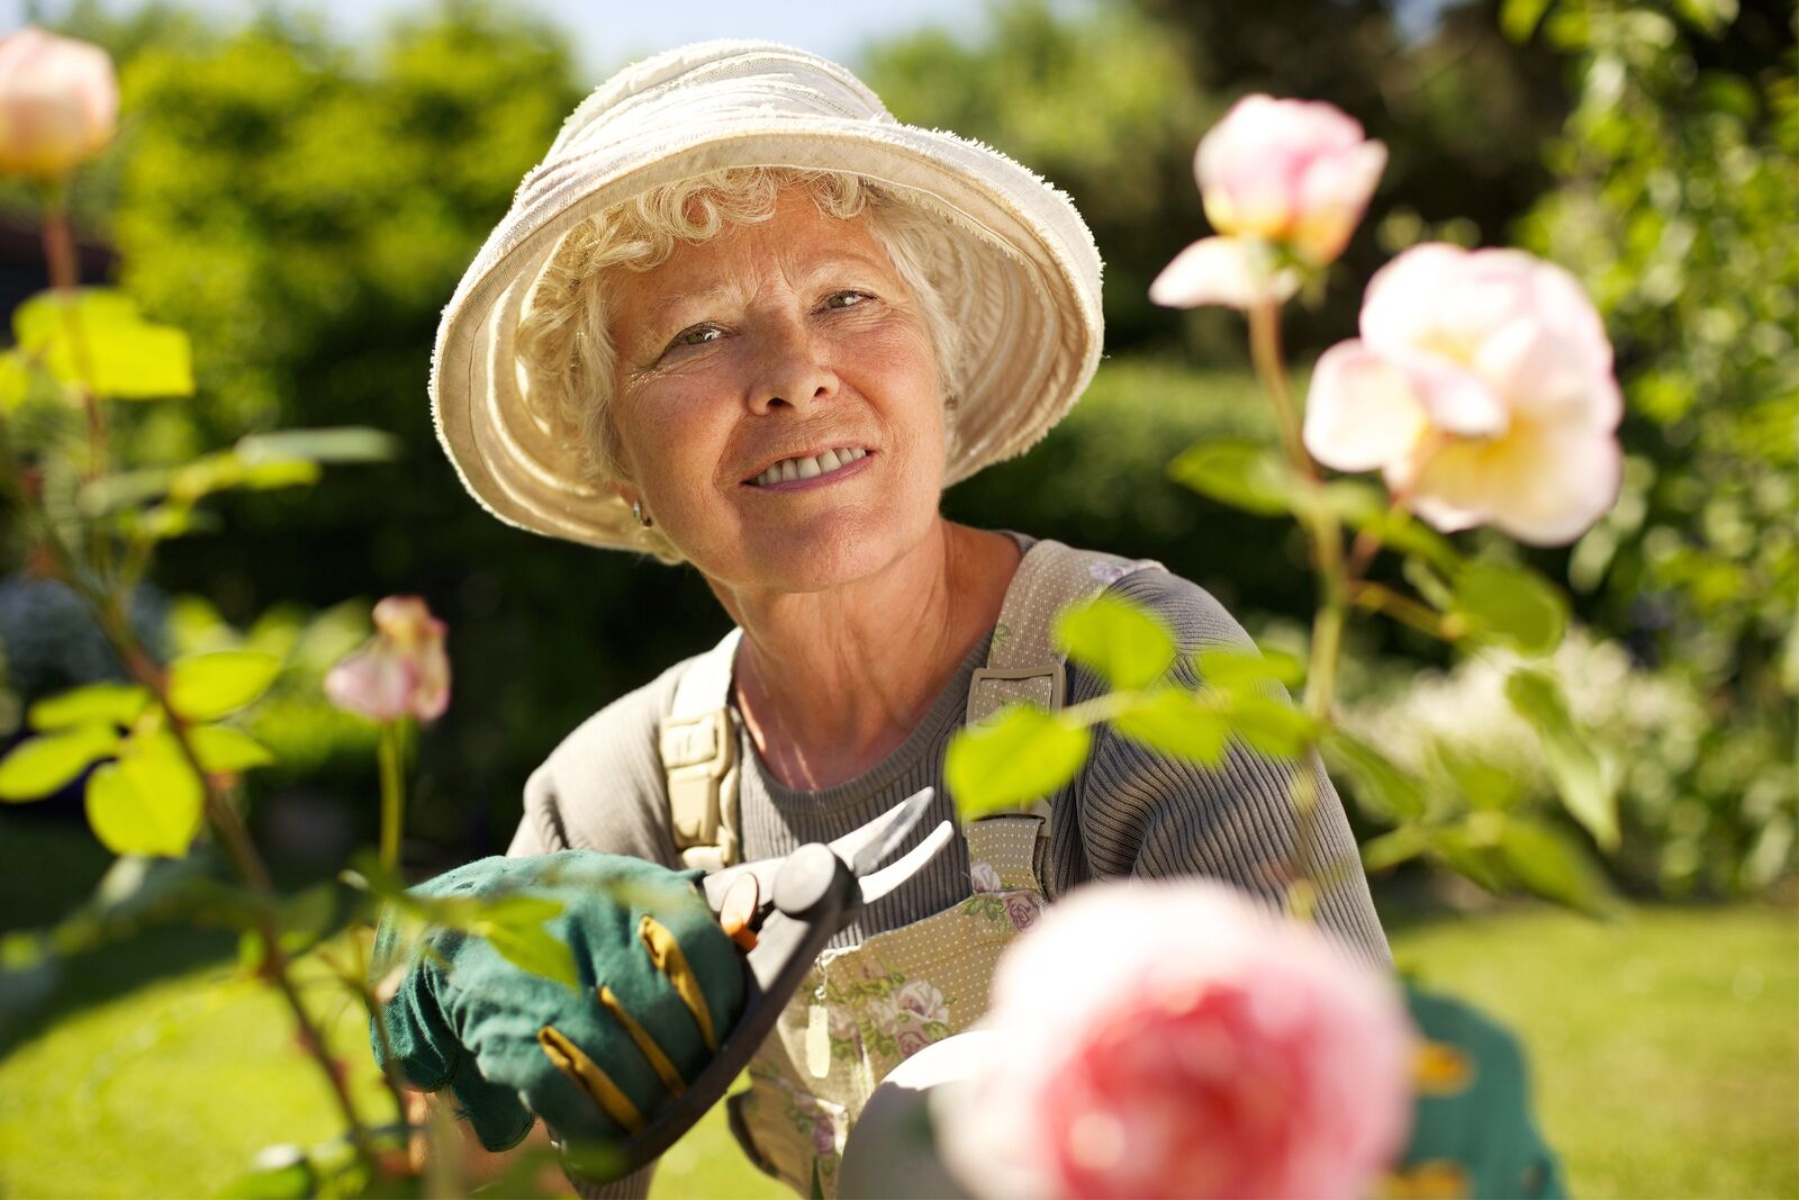 Home Care in Monroeville PA: Senior Gardening Benefits